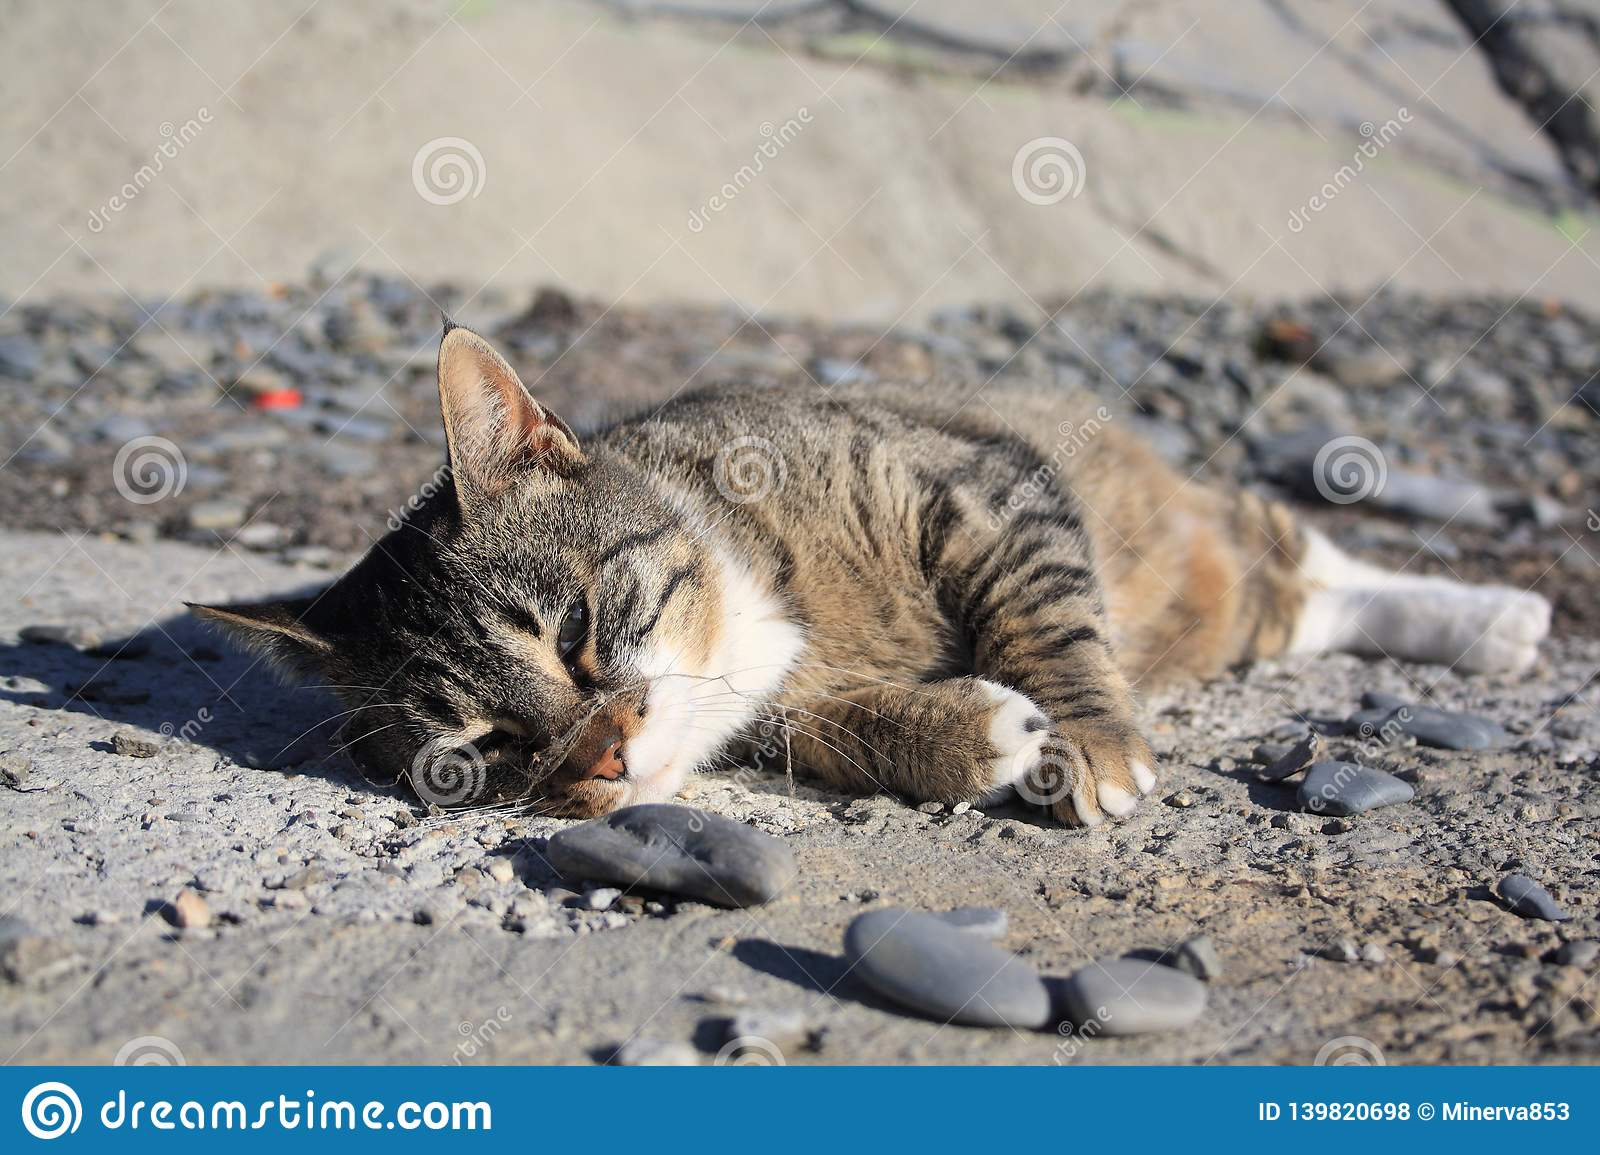 Lazy cat lying on the ground under sunlights. Spider web on its nose. Grey beach stones.